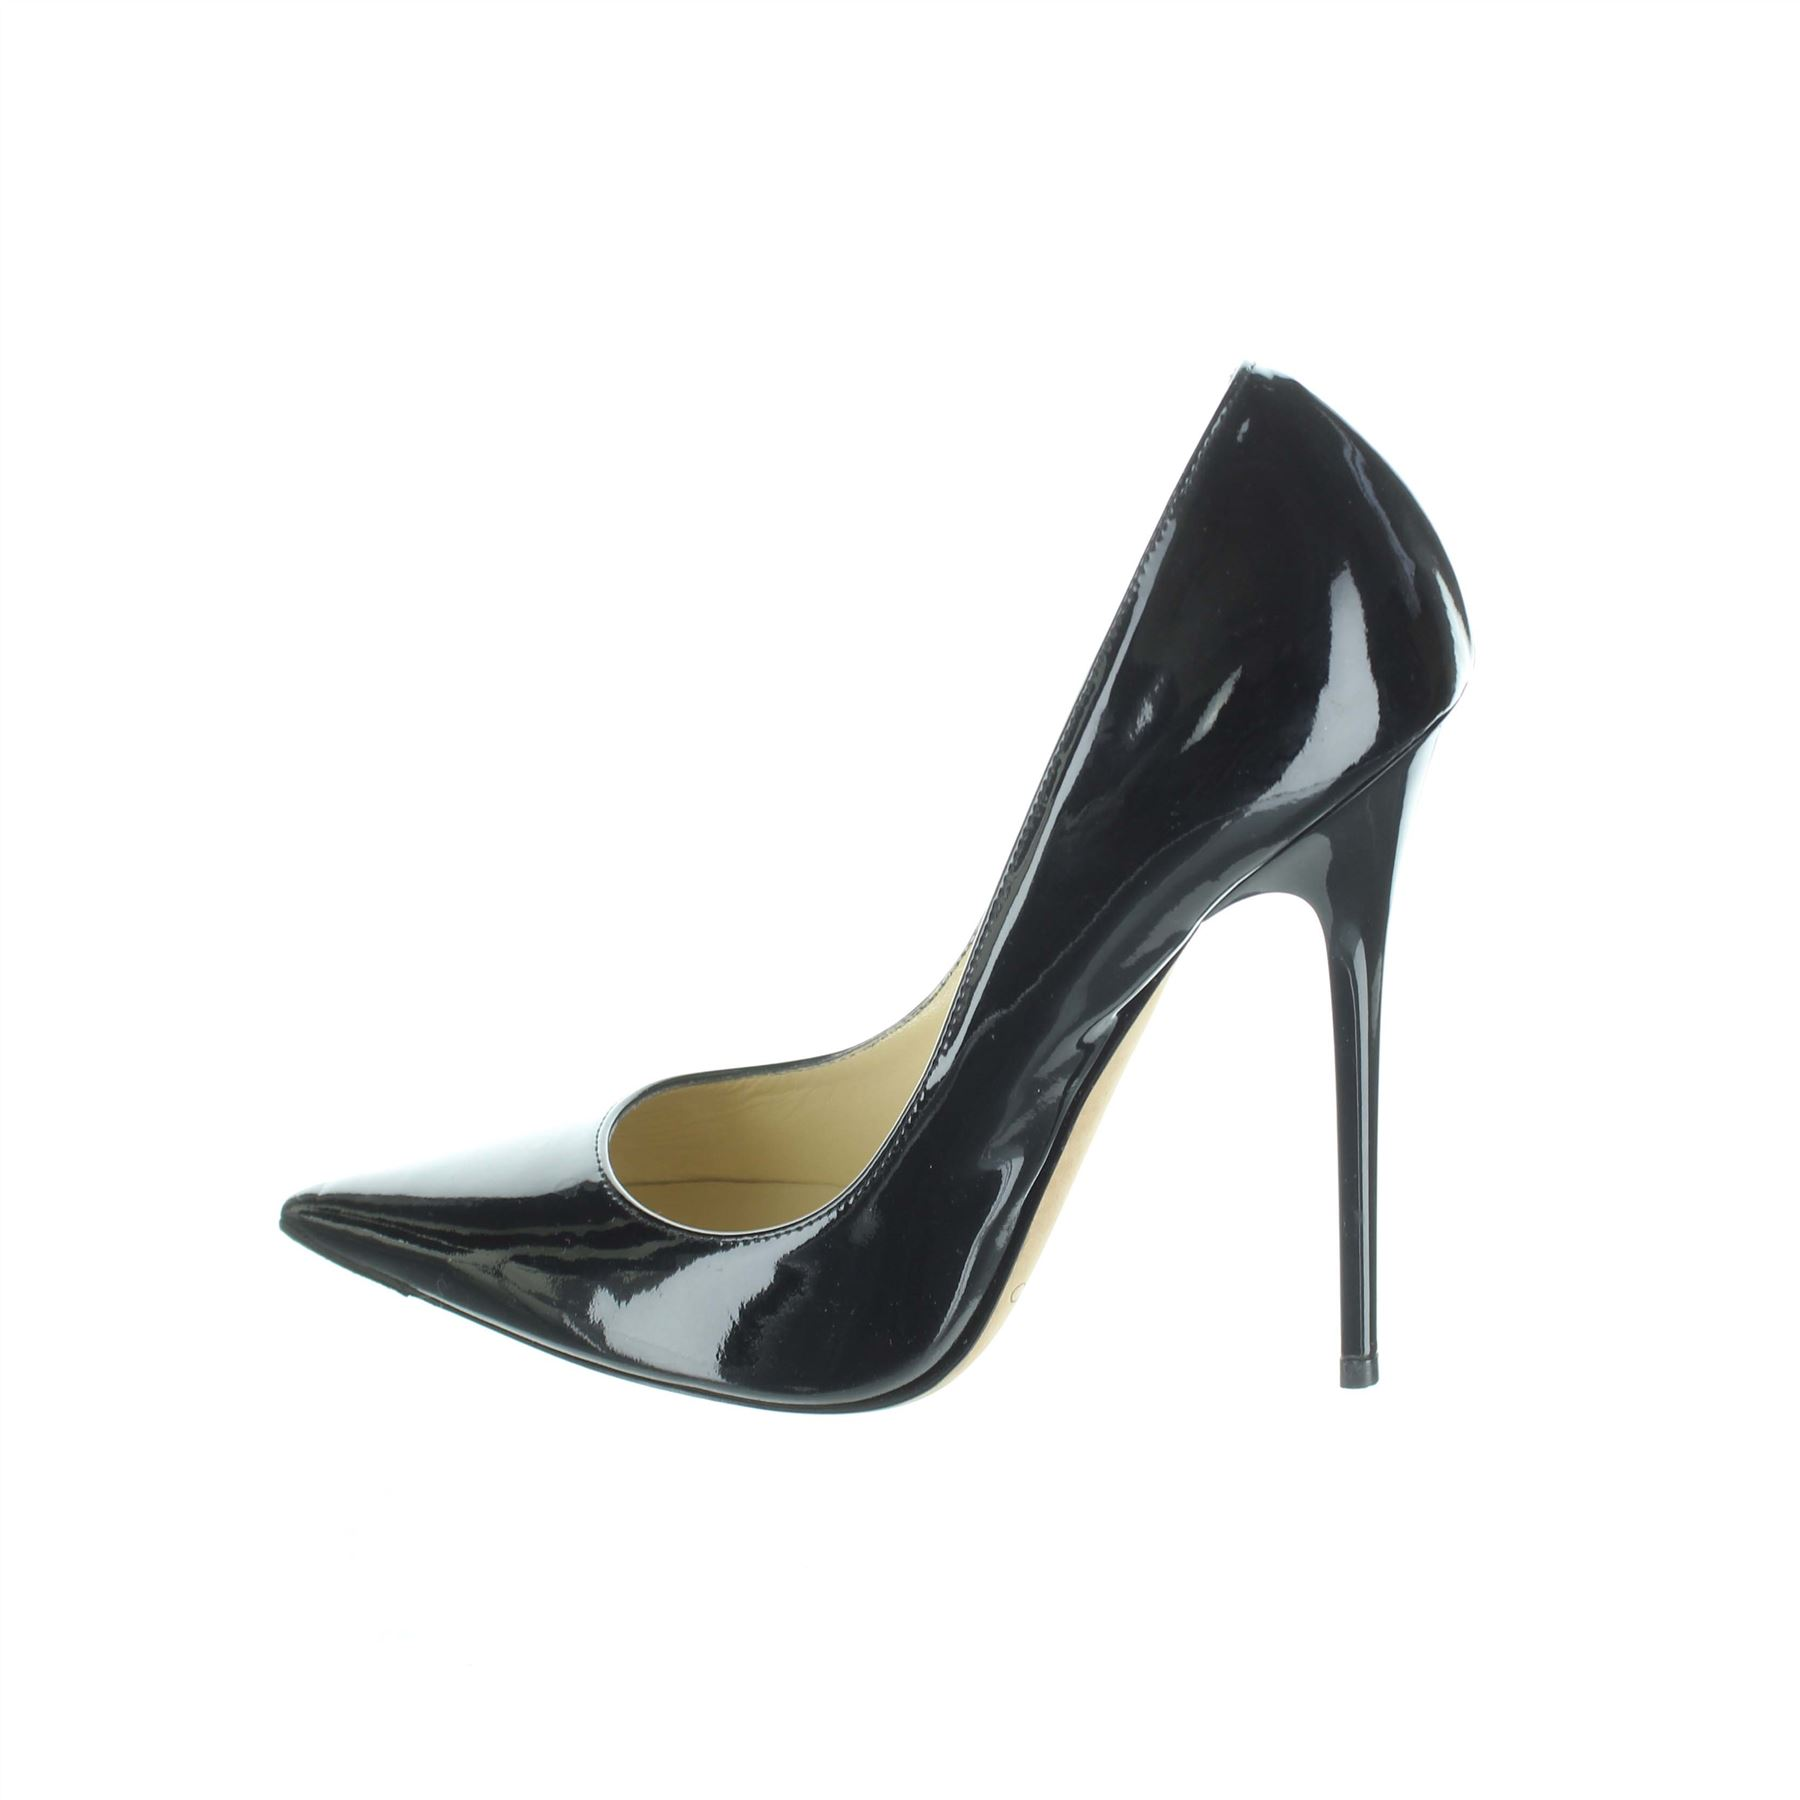 bf26b97984e8 Details about JIMMY CHOO Anouk Black Patent Leather Heels Pumps